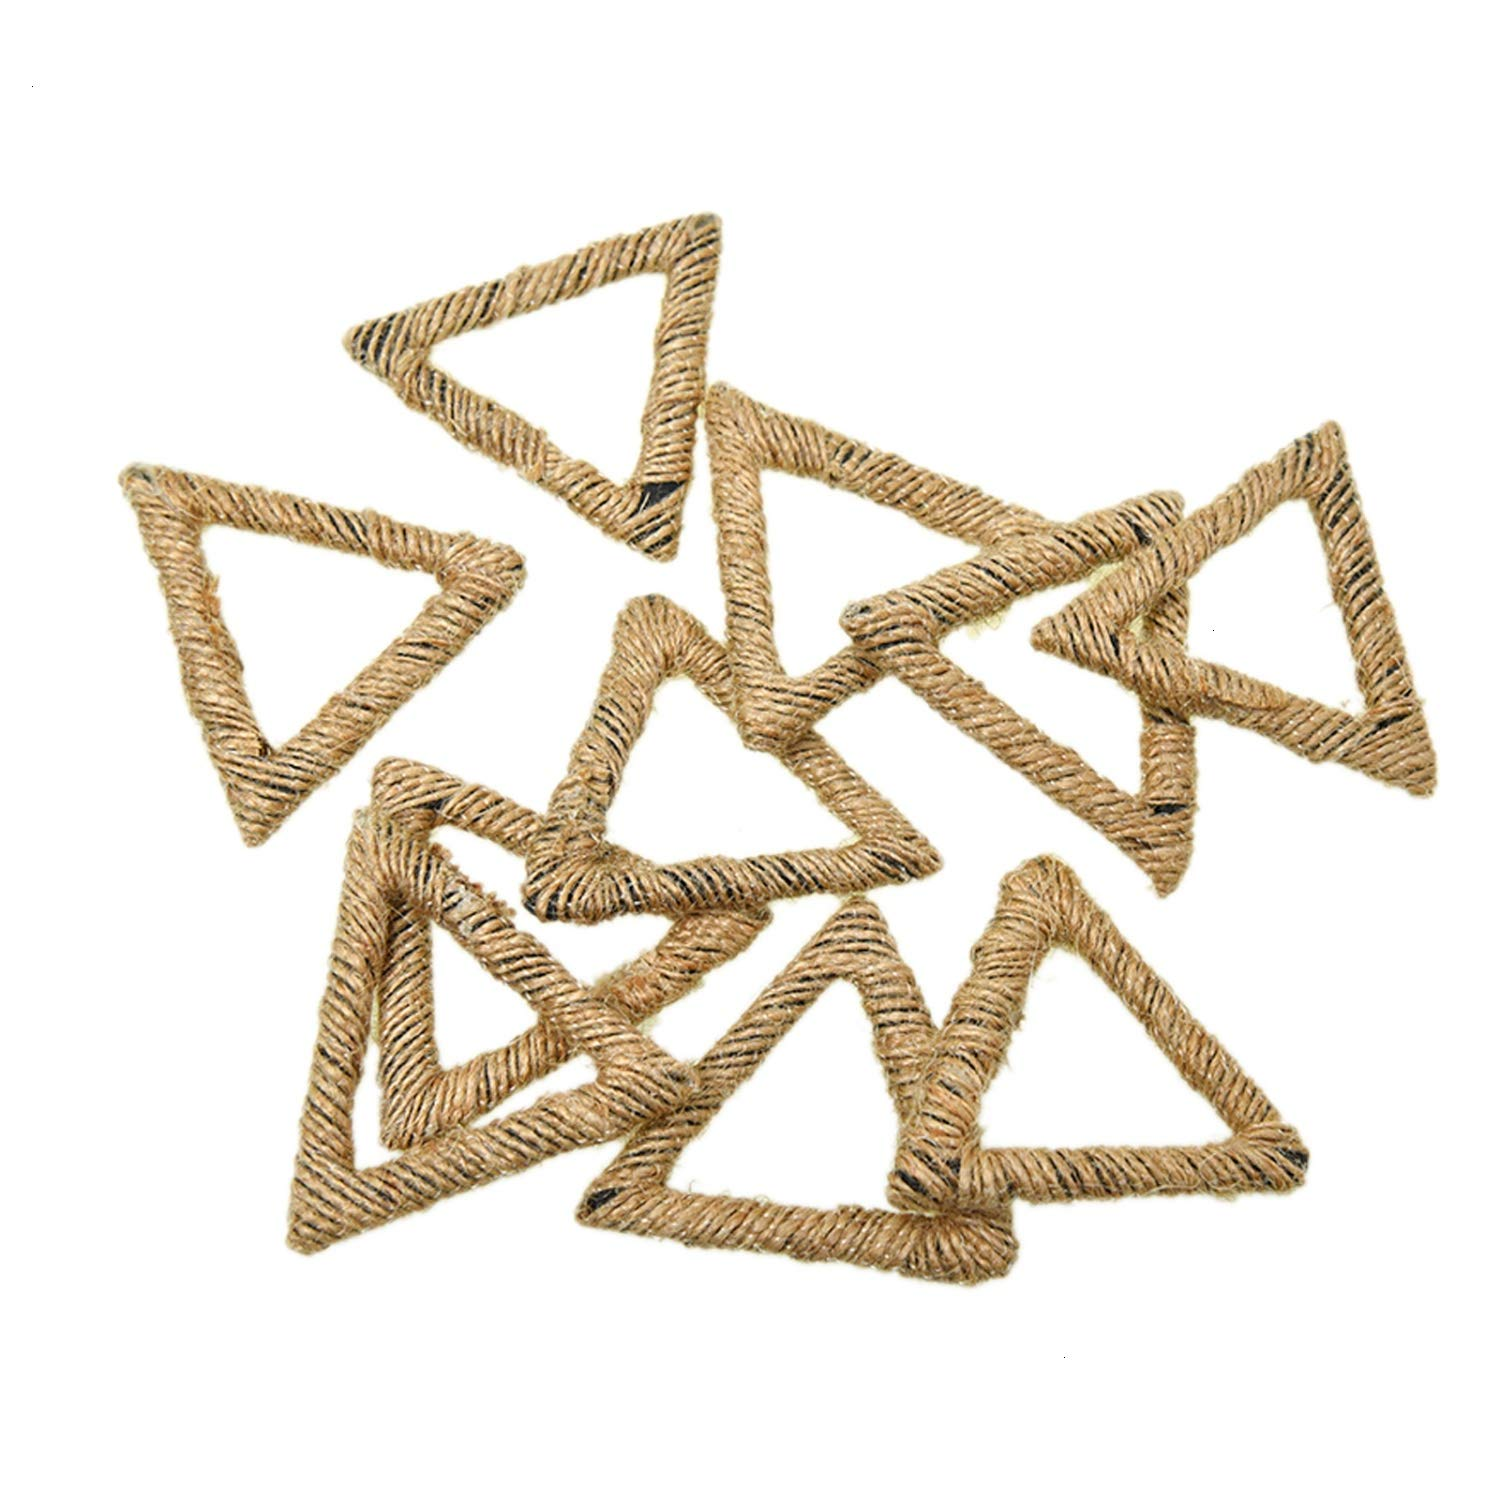 Monrocco 10 Pieces Burlap Jute Hemp Wire Line Triangle Charm Pendant for Earring Craft Making DIY Ear Jewelry Fingdings